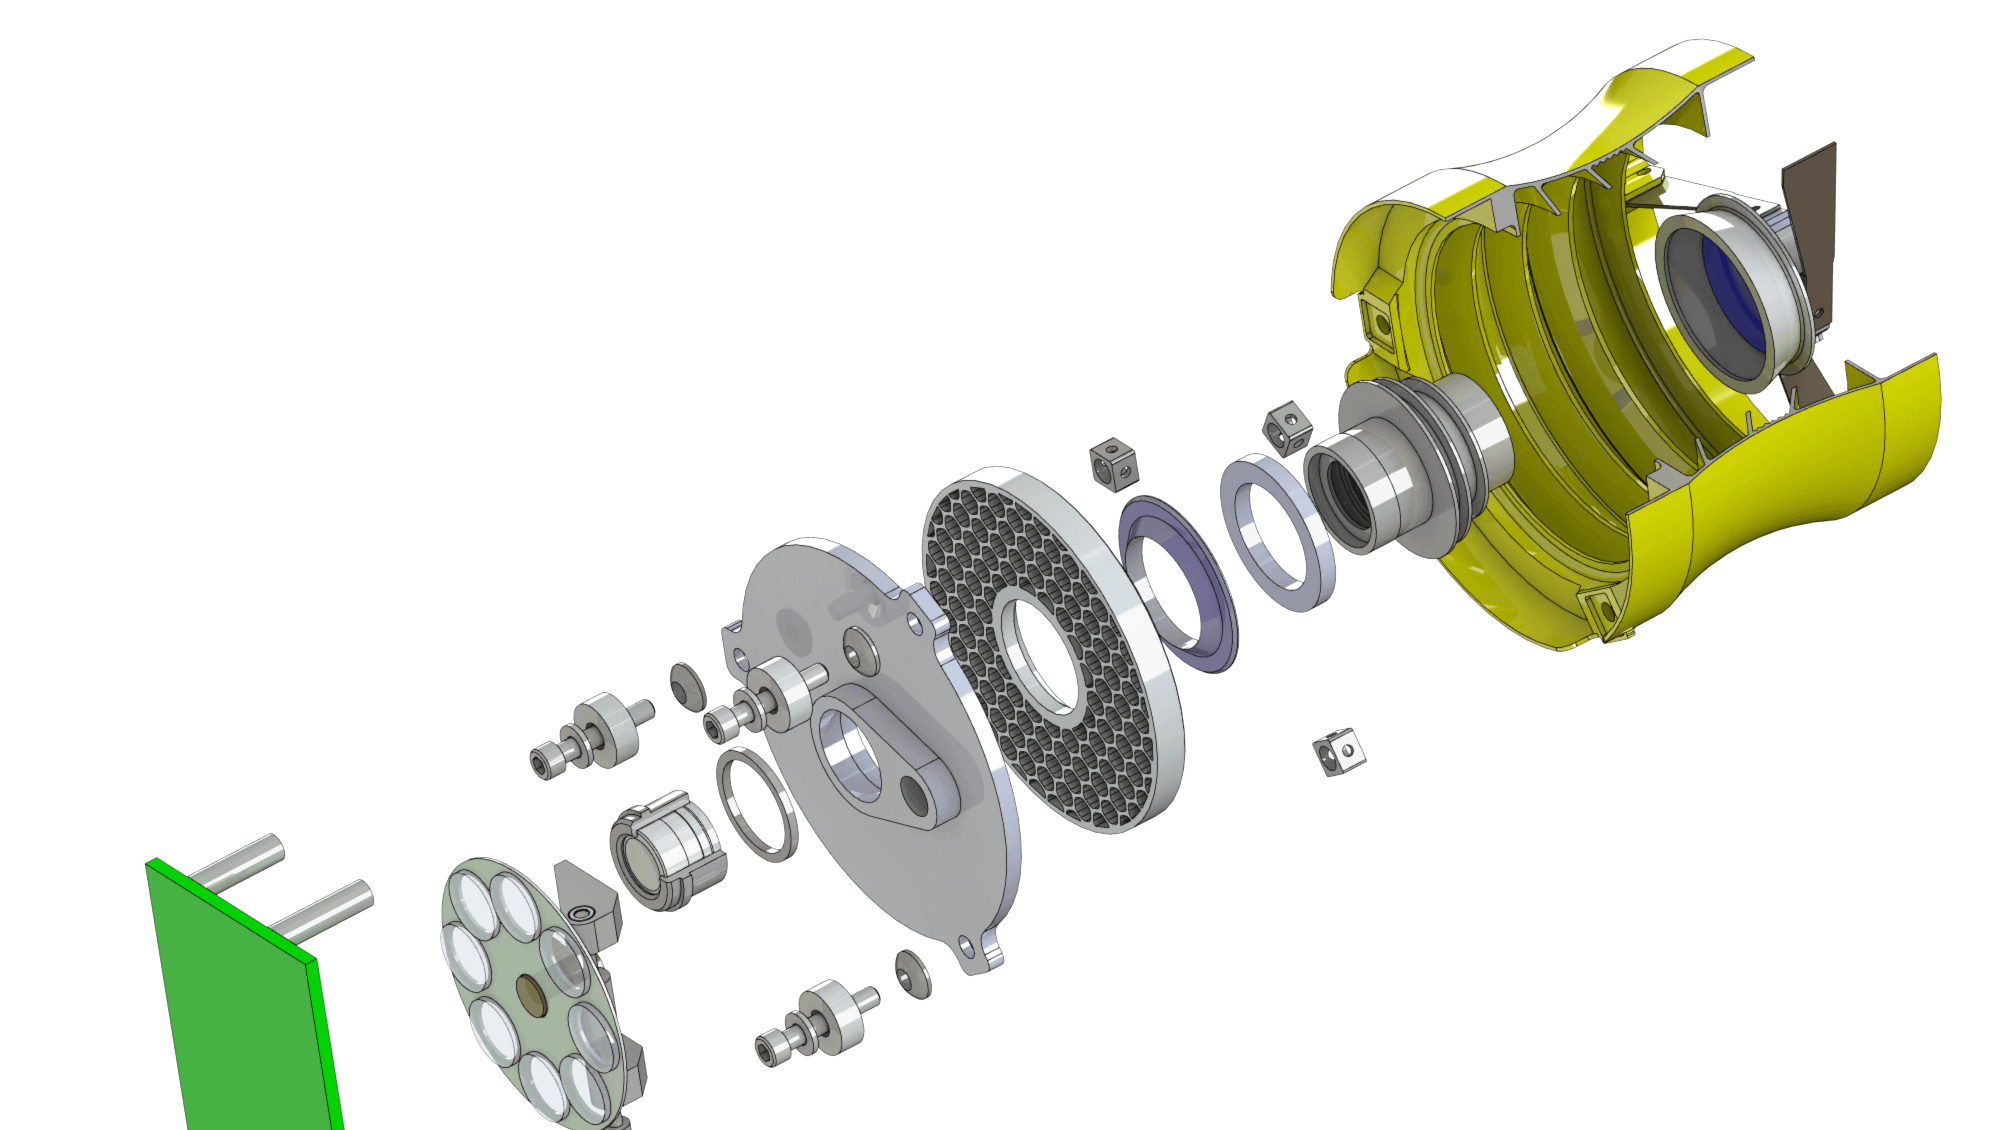 NASA is making the most of 3D printing | All3DP